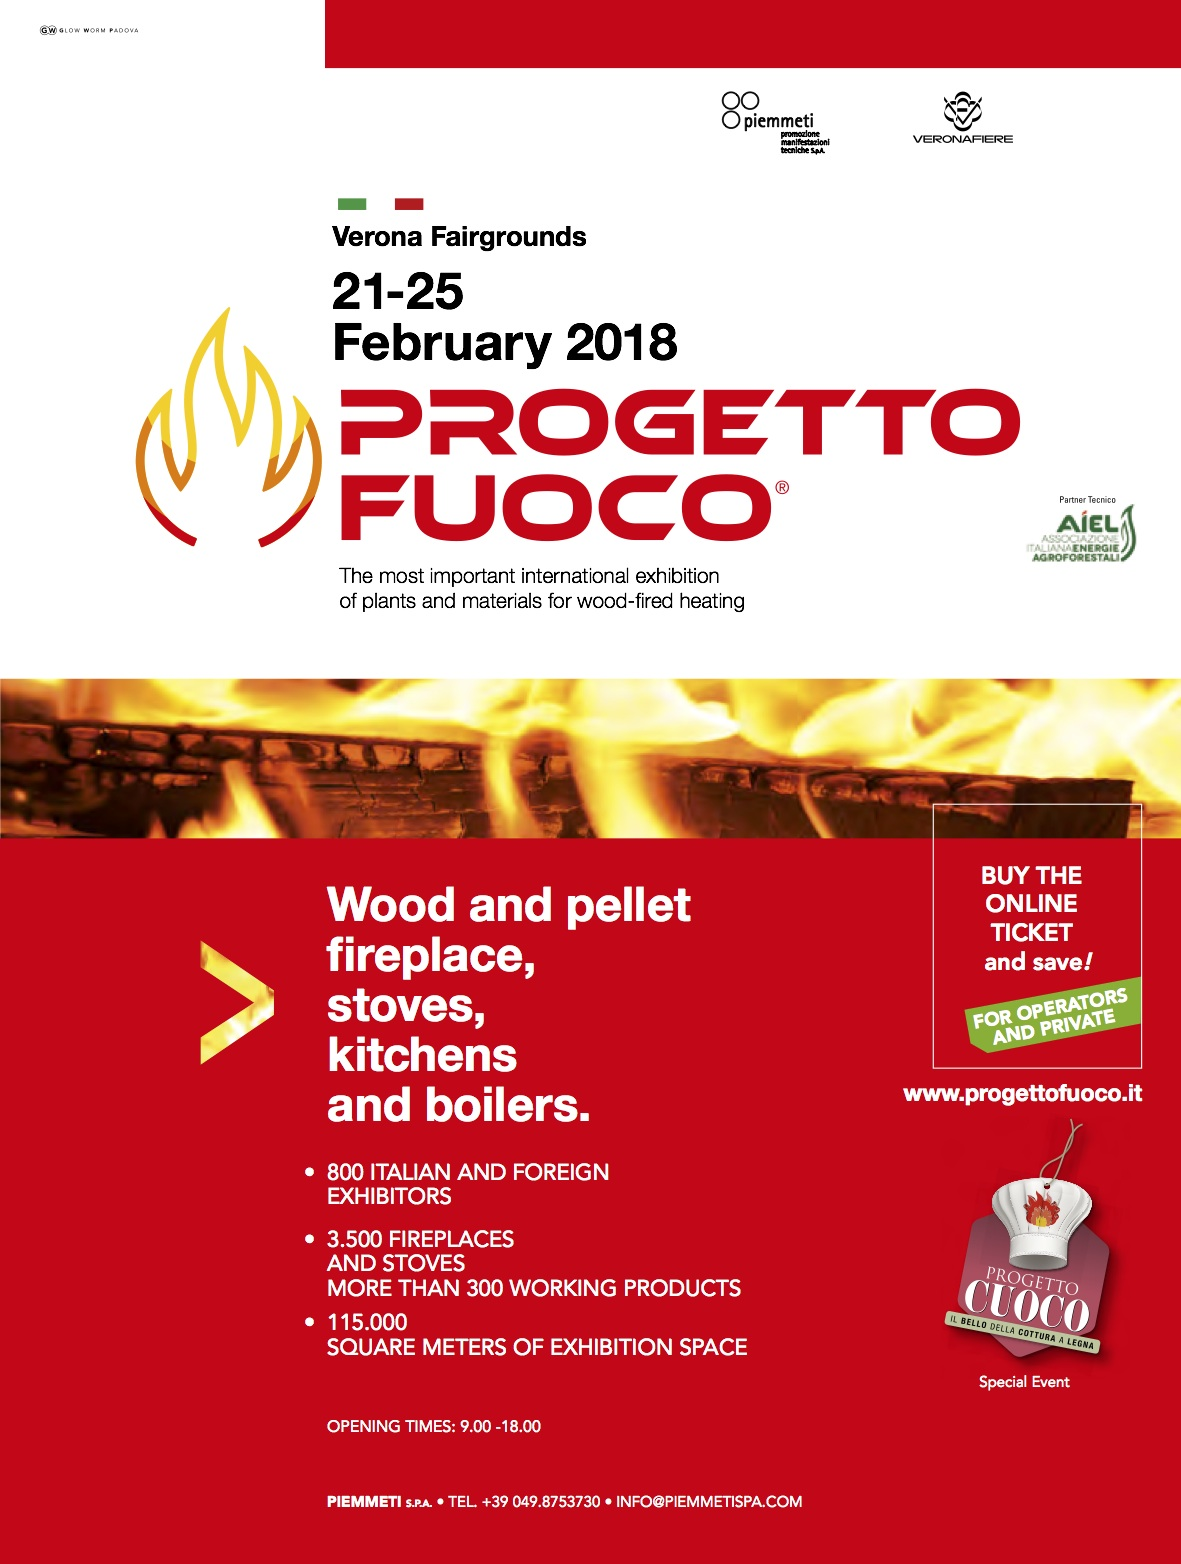 Progetto Fuoco -The most important trade fair in the world